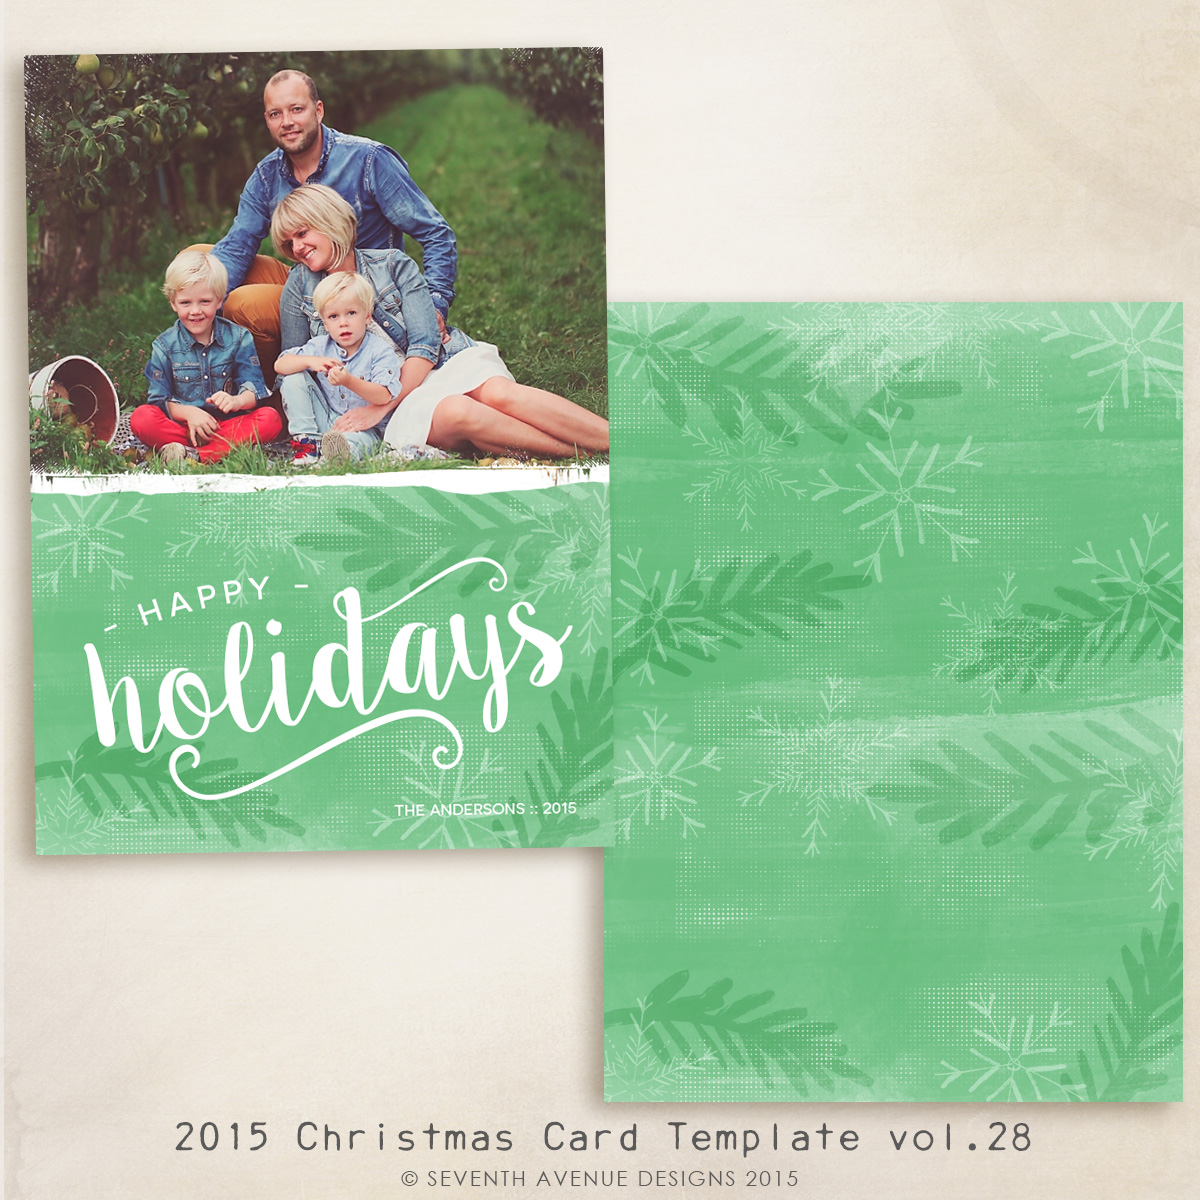 2015 Christmas Card Templates vol.28 -- 7x5 inch card template